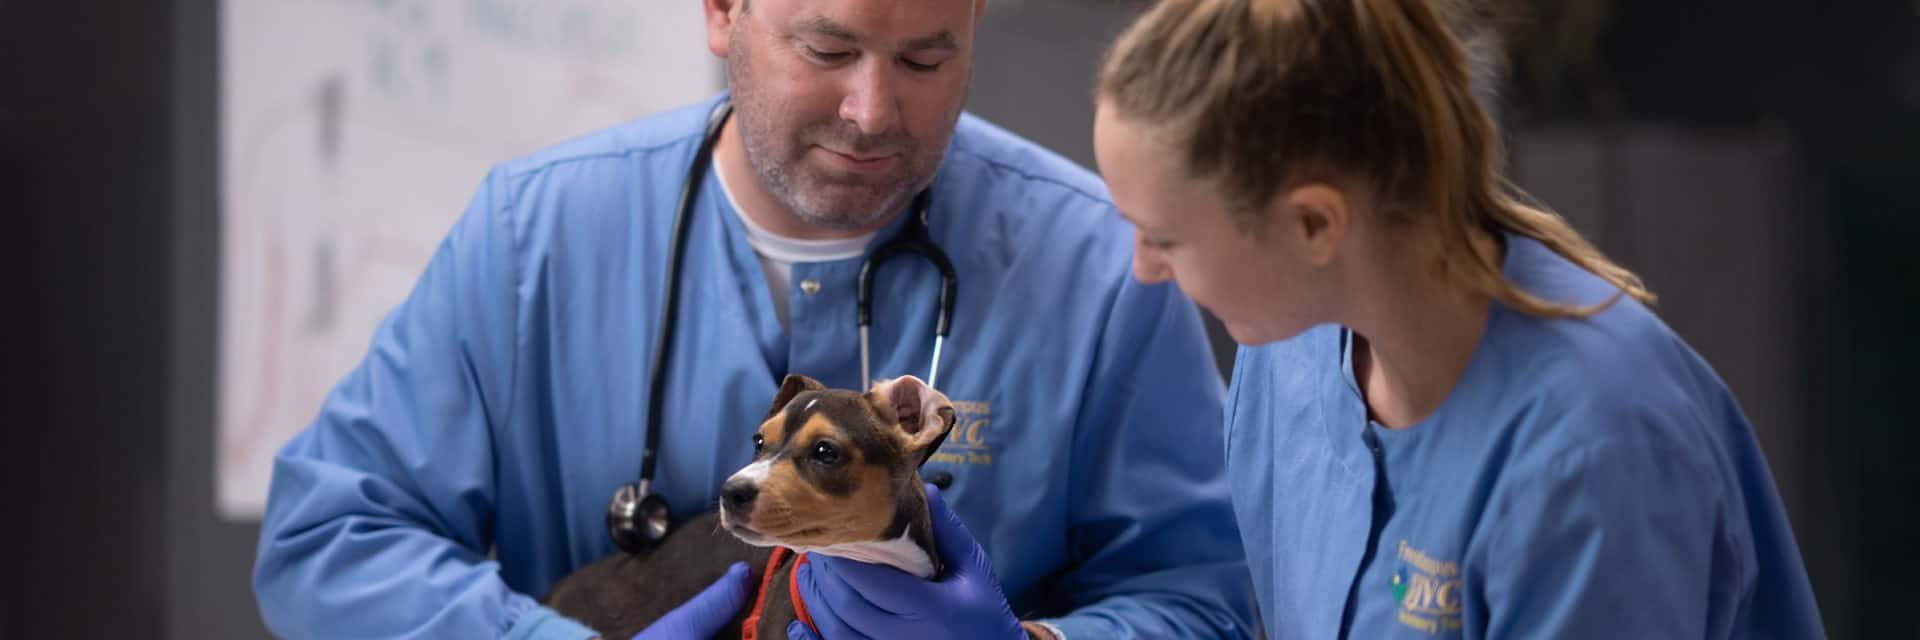 Man and young woman in blue scrubs examining small dog.